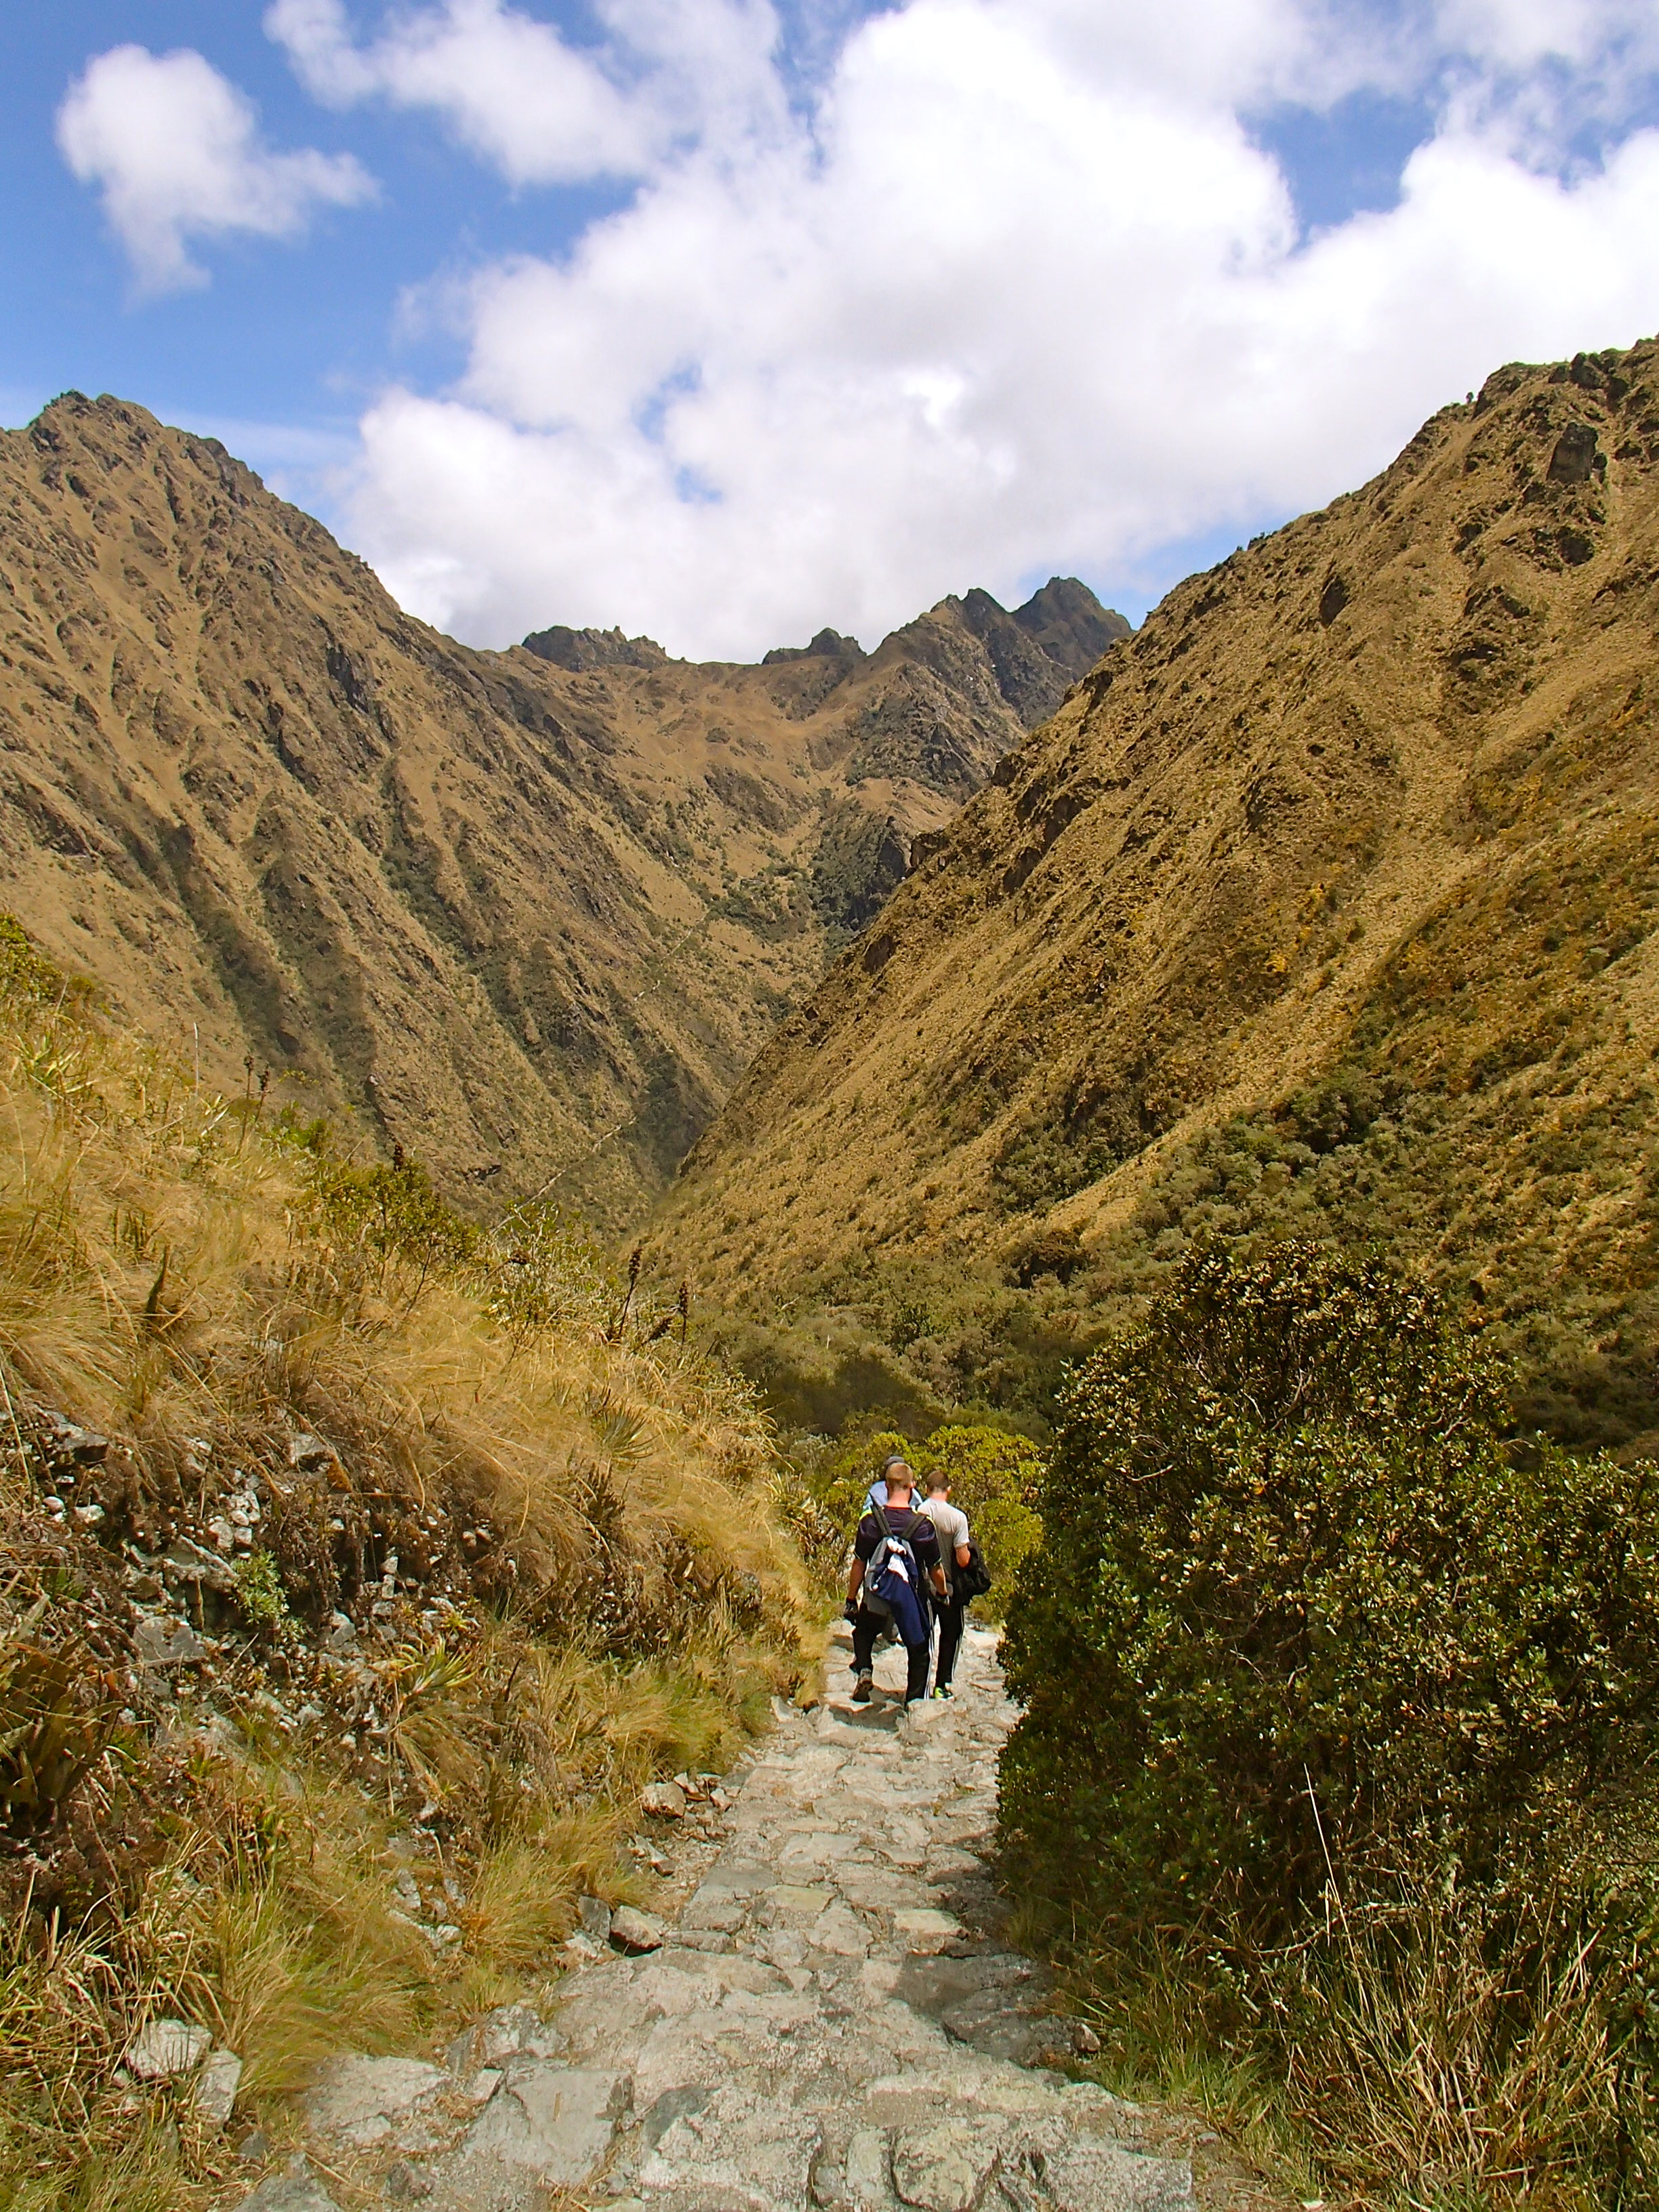 trekking the inca trail from cusco to machu picchu